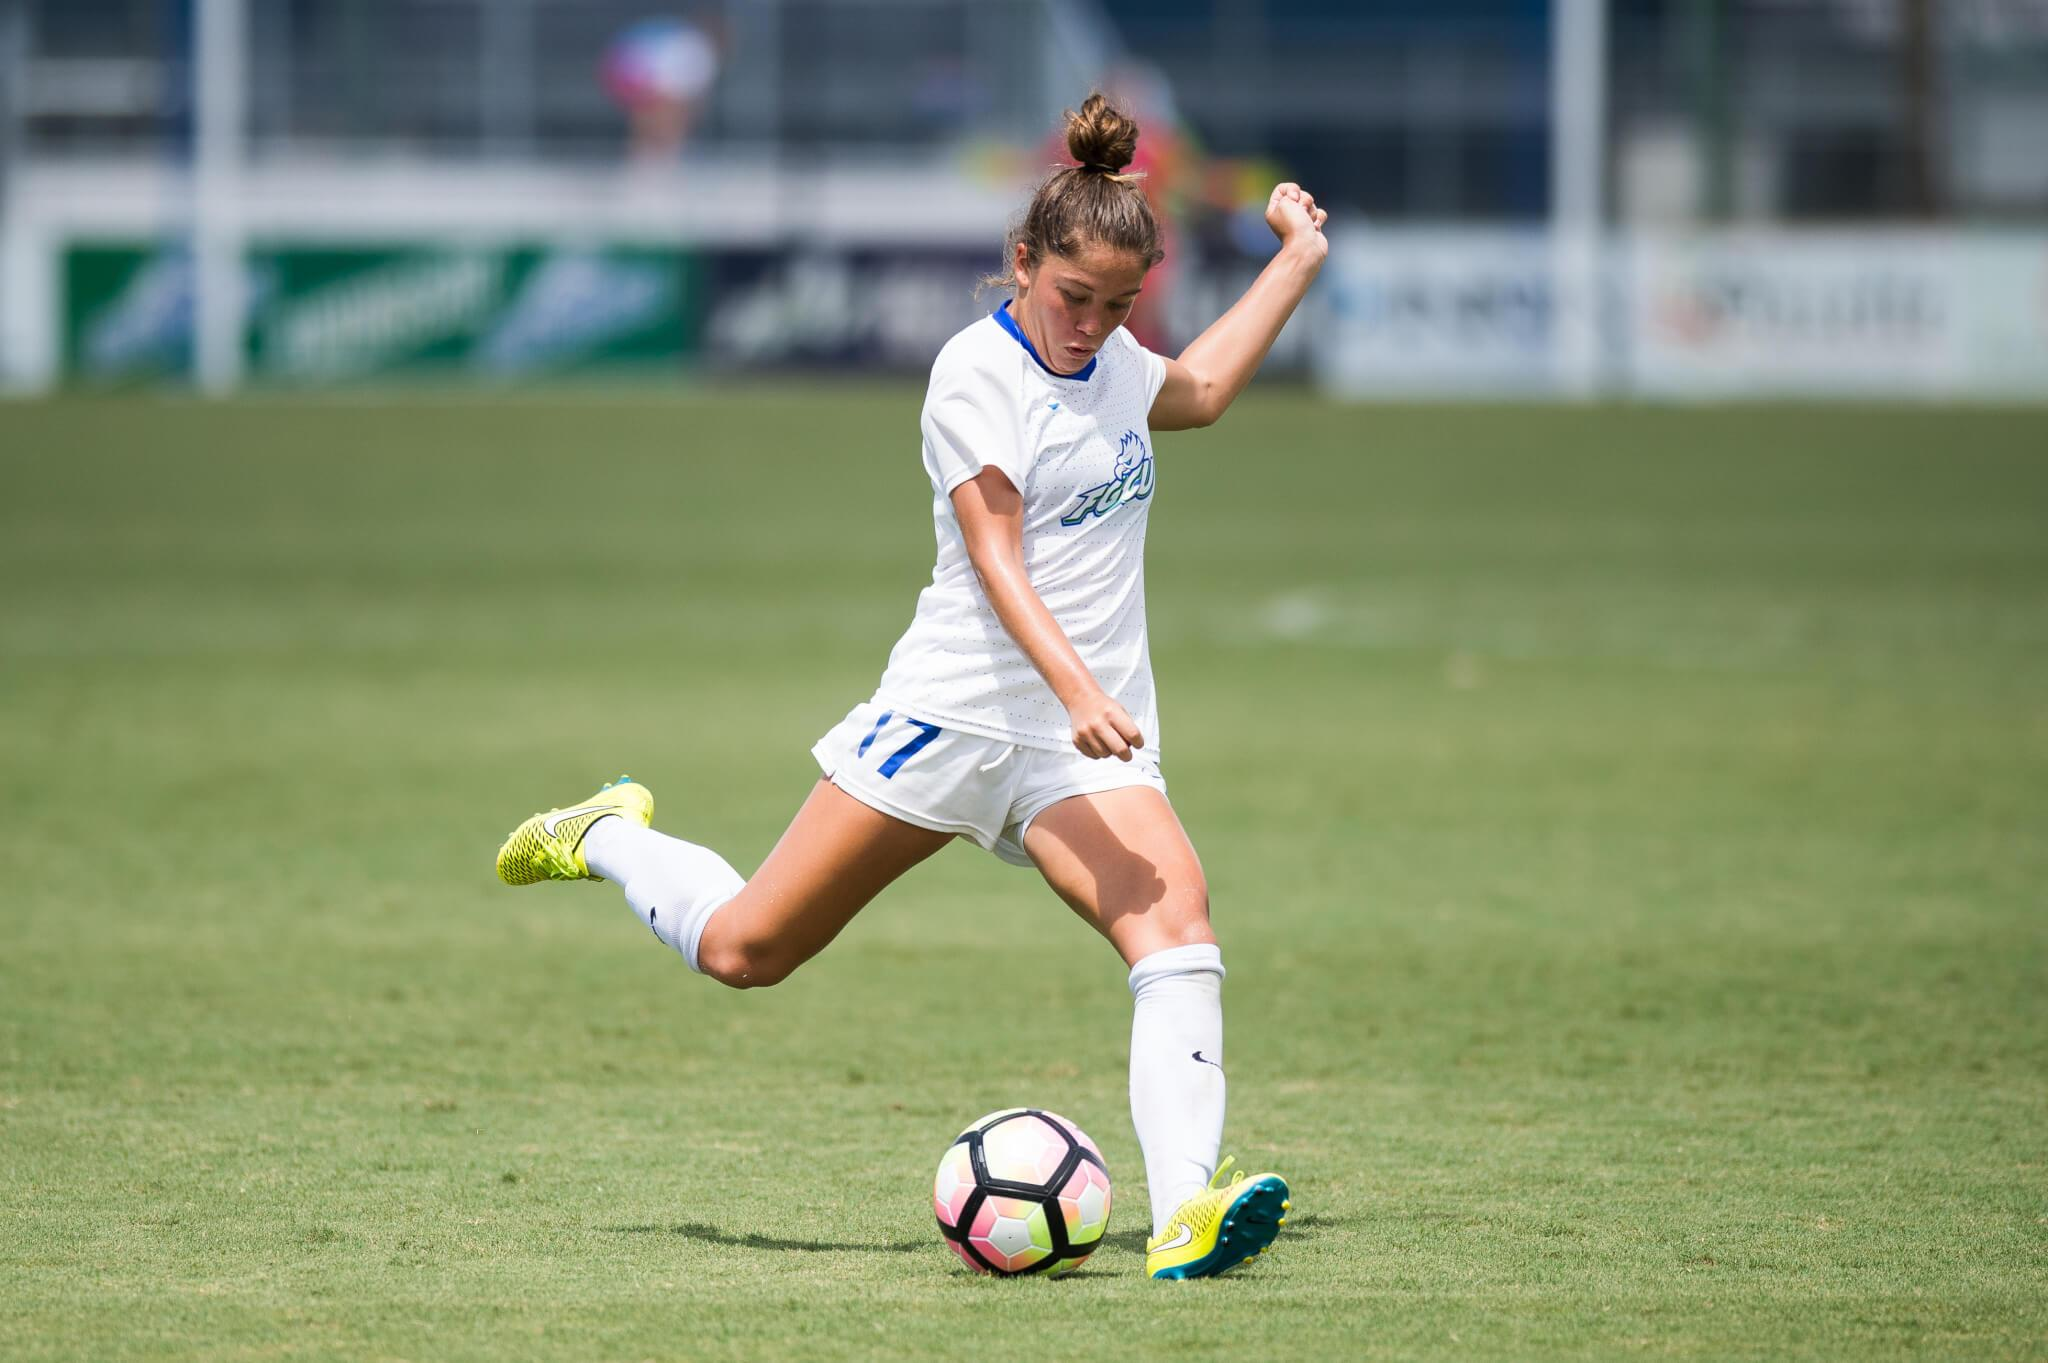 FGCU women's soccer ends non-conference play with 7-1 win over Fairleigh Dickinson